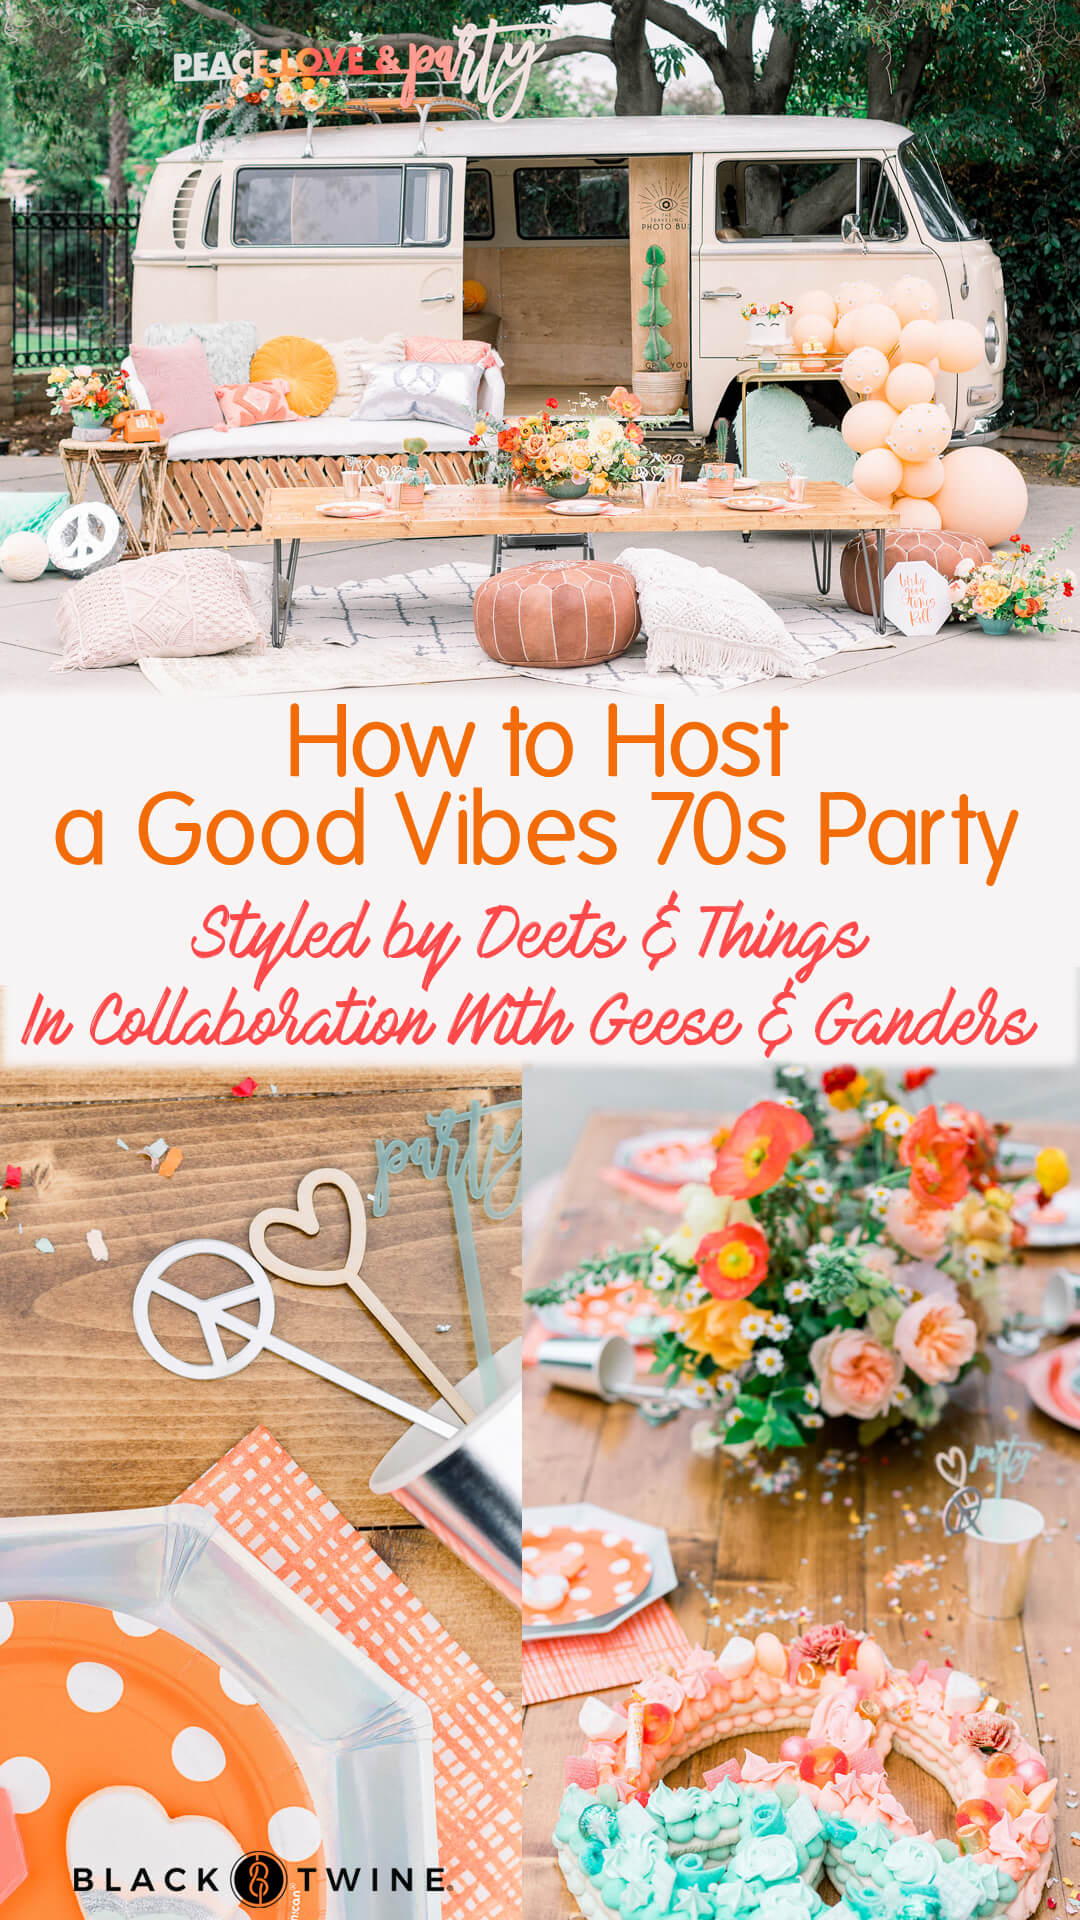 Photo Collage from Peace, Love & Party styled by Deets & Things   Black Twine